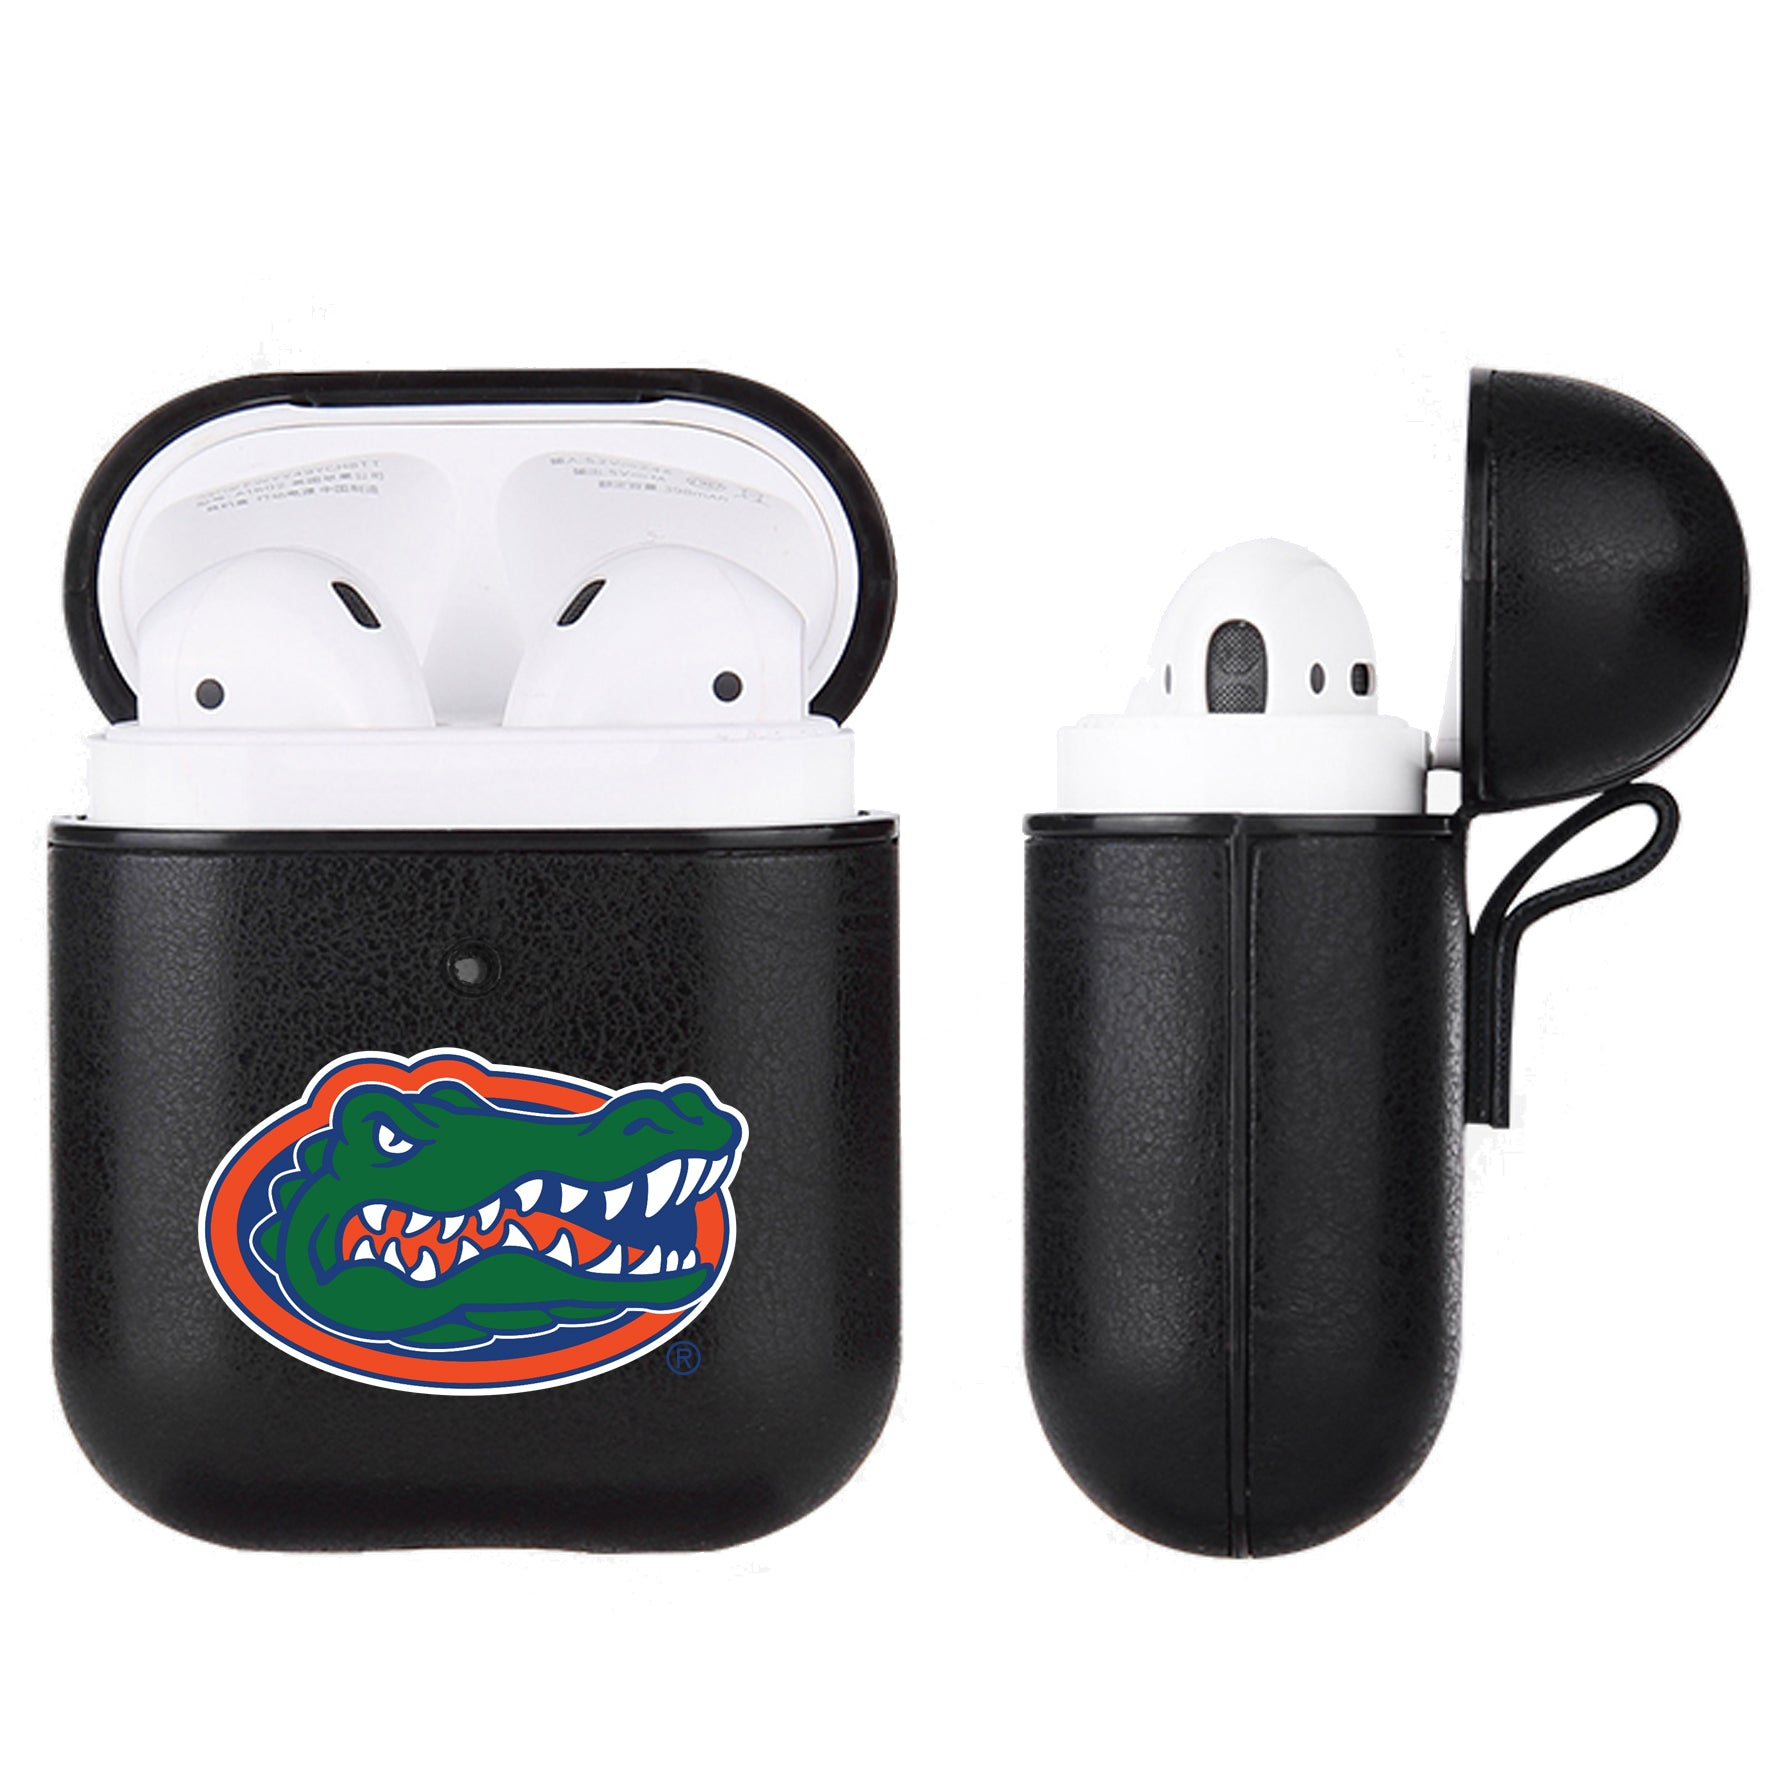 Florida Gators Primary Mark design Black Apple Air Pod Leather Case